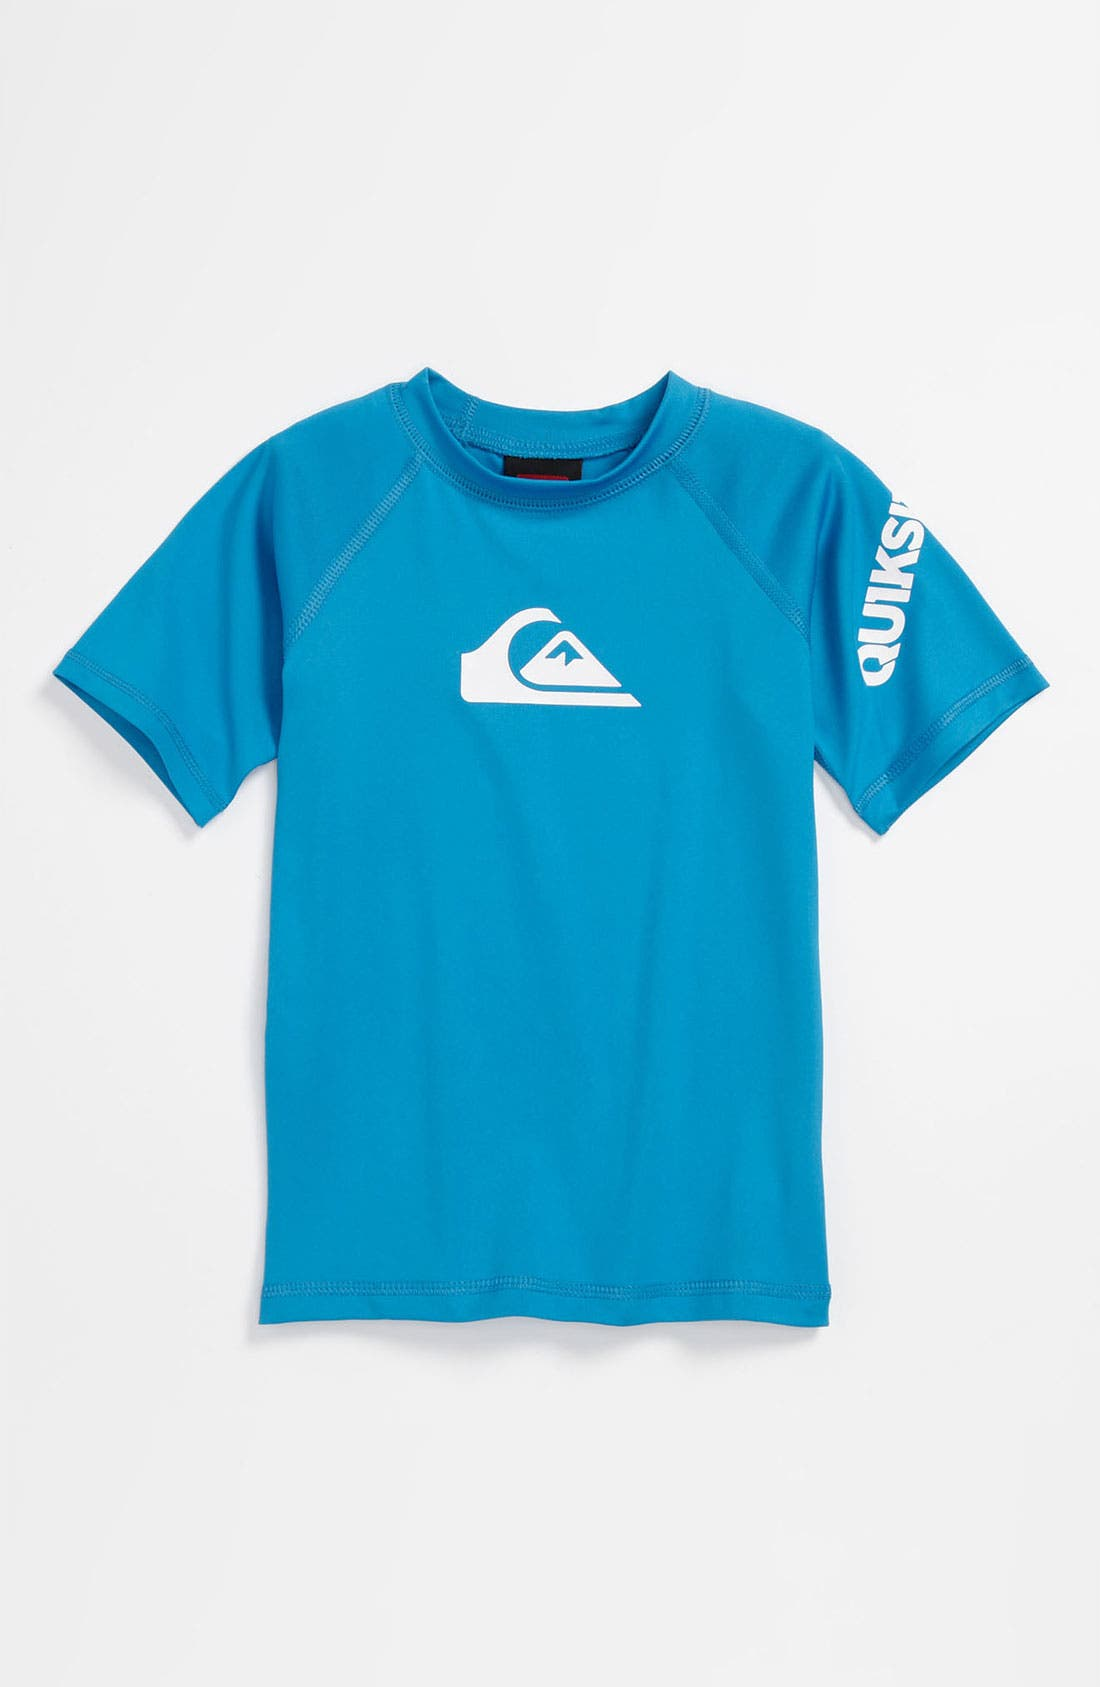 Alternate Image 1 Selected - Quiksilver 'All Time' Rashguard (Toddler)